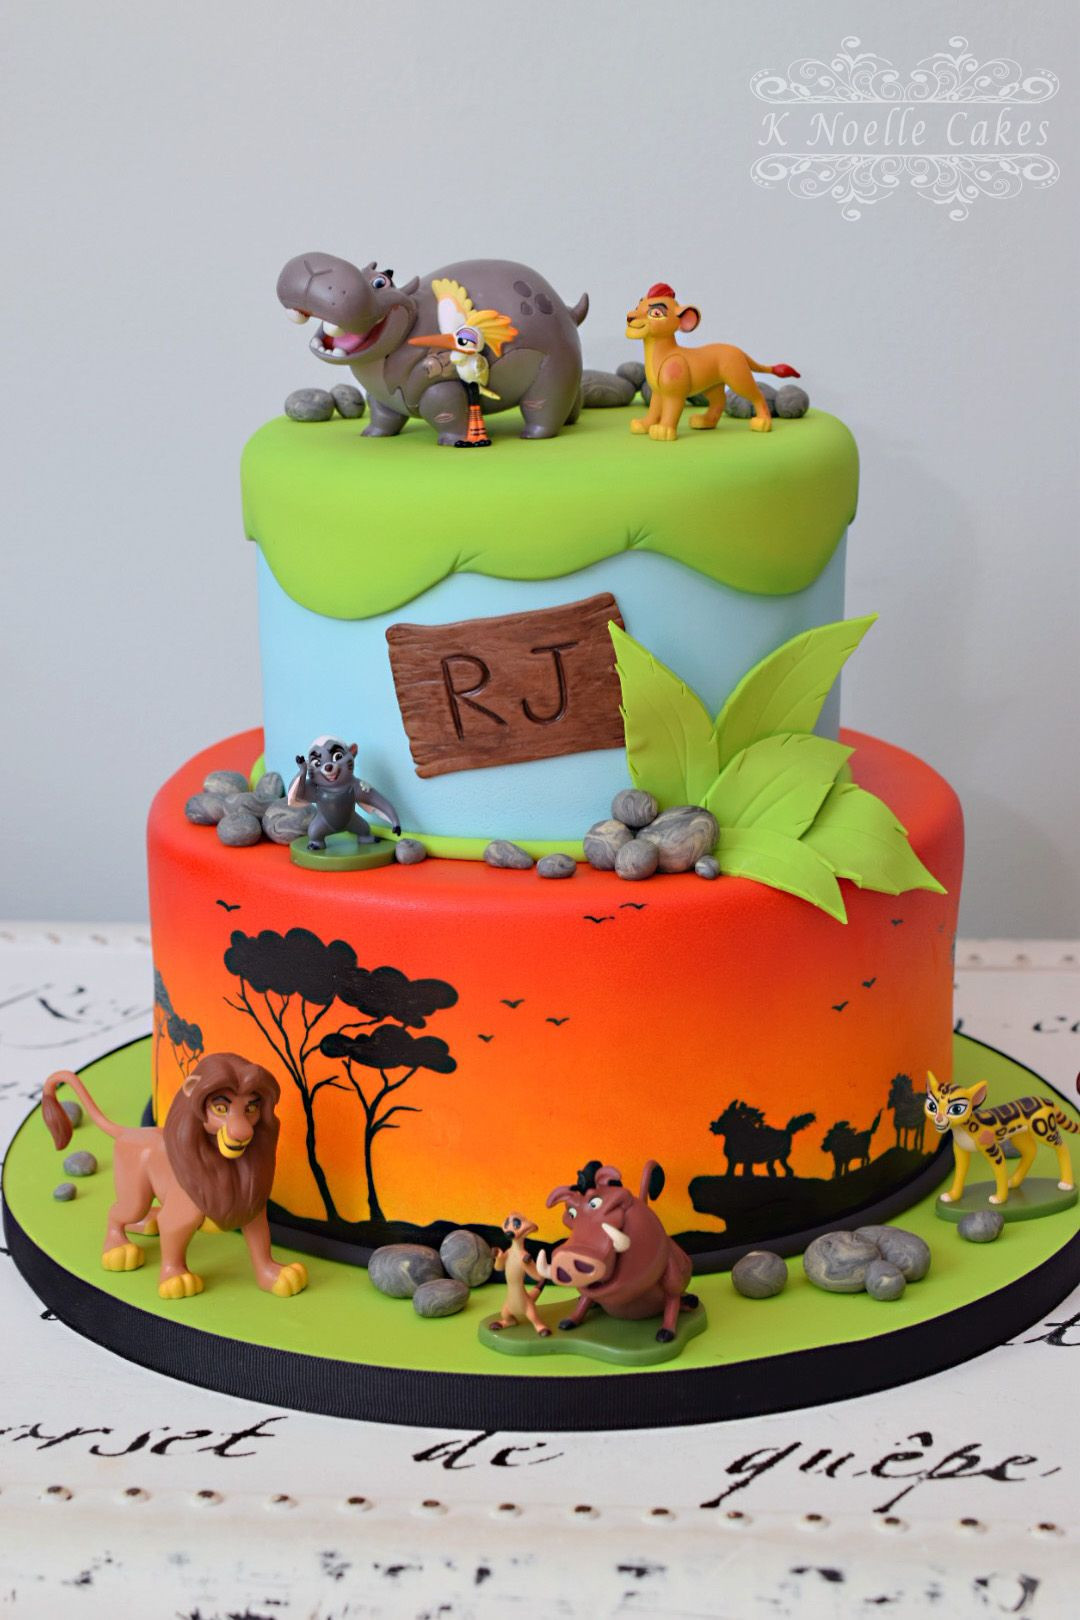 Best ideas about Lion King Birthday Cake . Save or Pin Lion Guard Lion King theme cake by K Noelle Cakes Now.